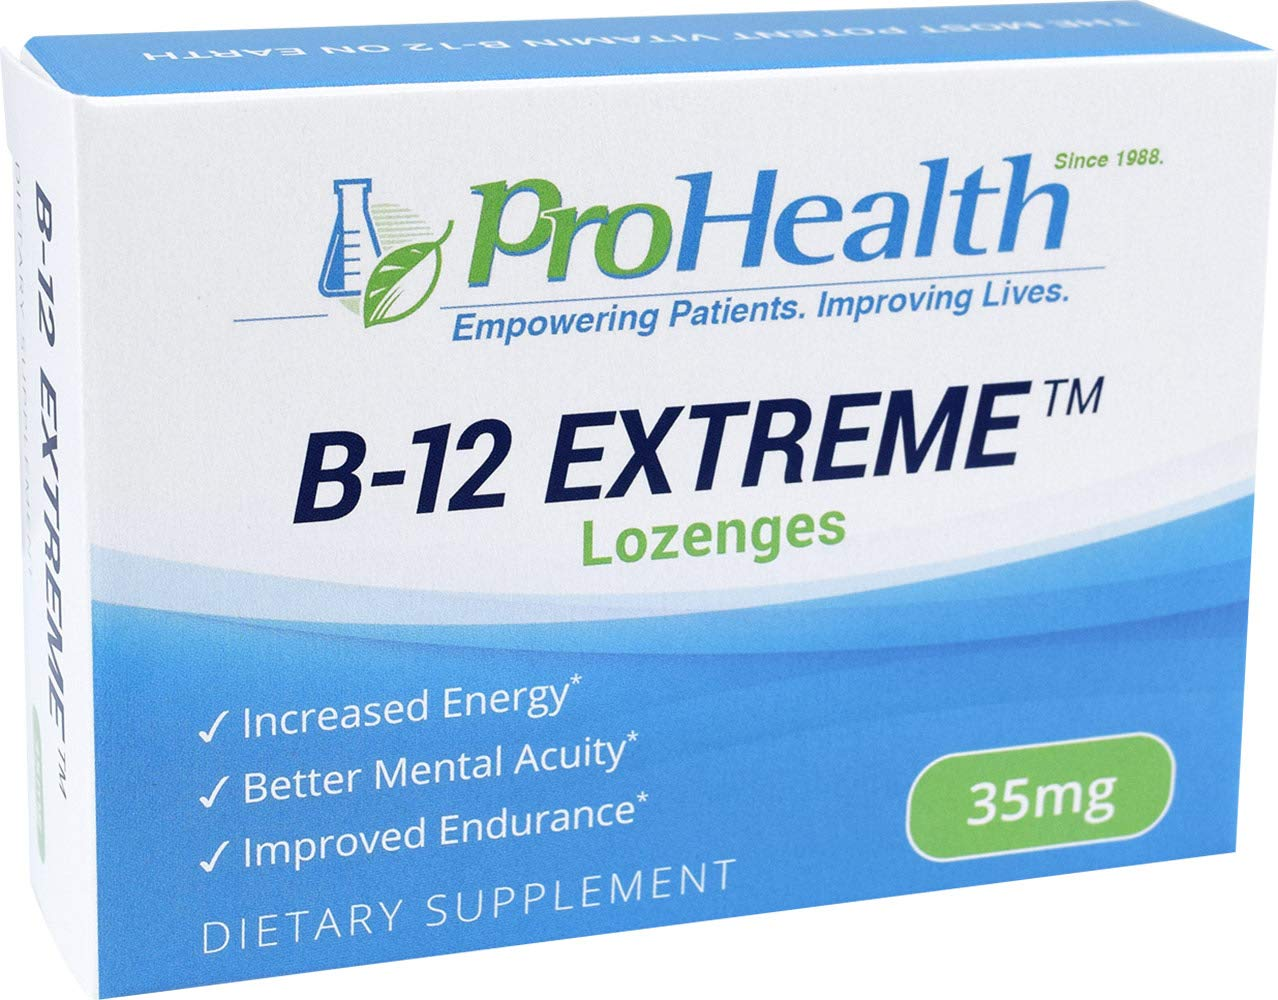 ProHealth B-12 Extreme 35 mg, 30 lozenges – High Potency Vitamin B12 Supplement Methylcobalamin, Dibencozide, Cyanocobalamin, Hydroxocobalamin Caffeine Free Gluten Free Vegan